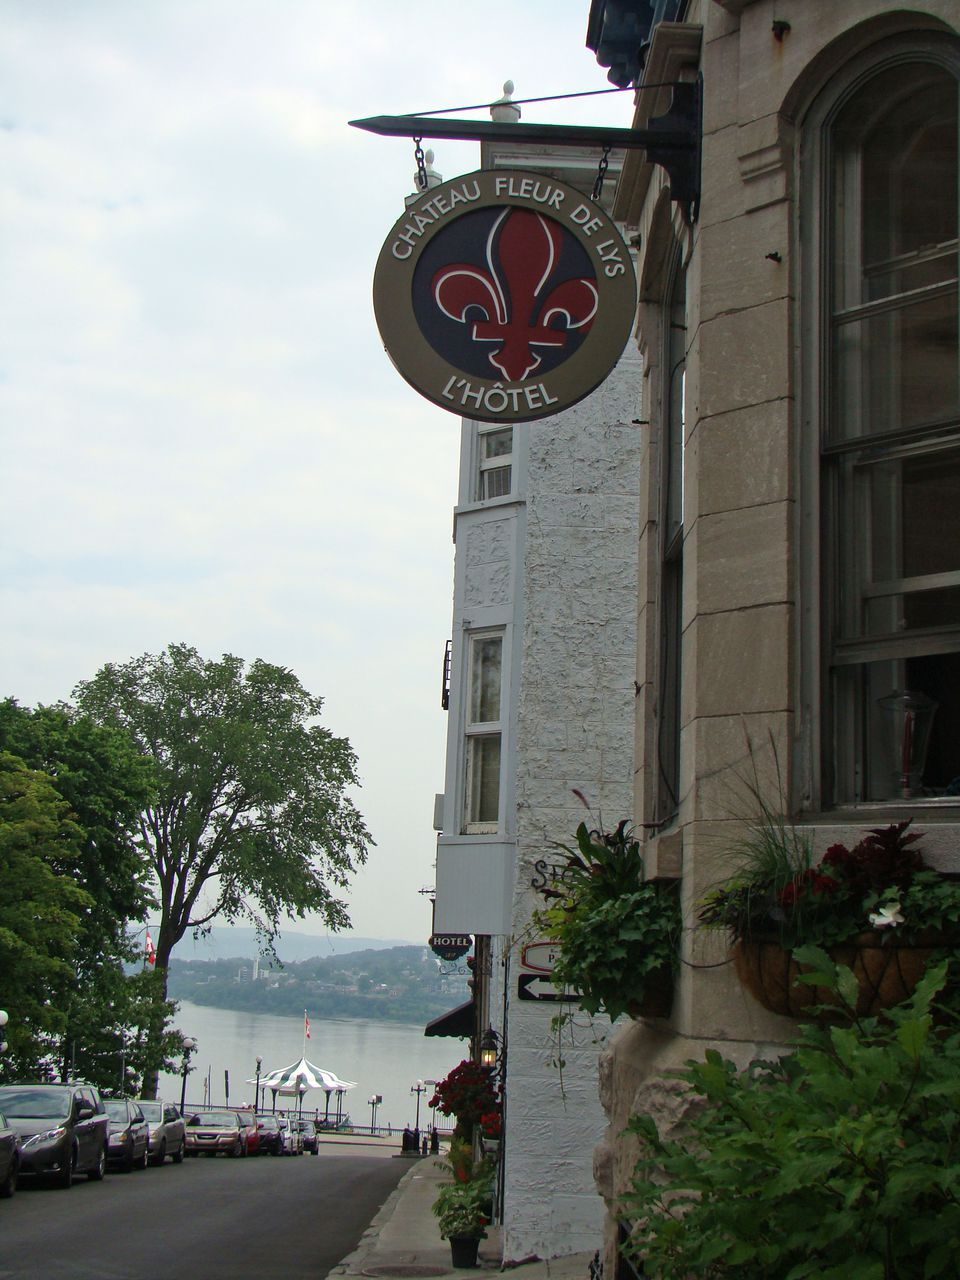 The Chateau Fleur de-Lys is located in Old Quebec.